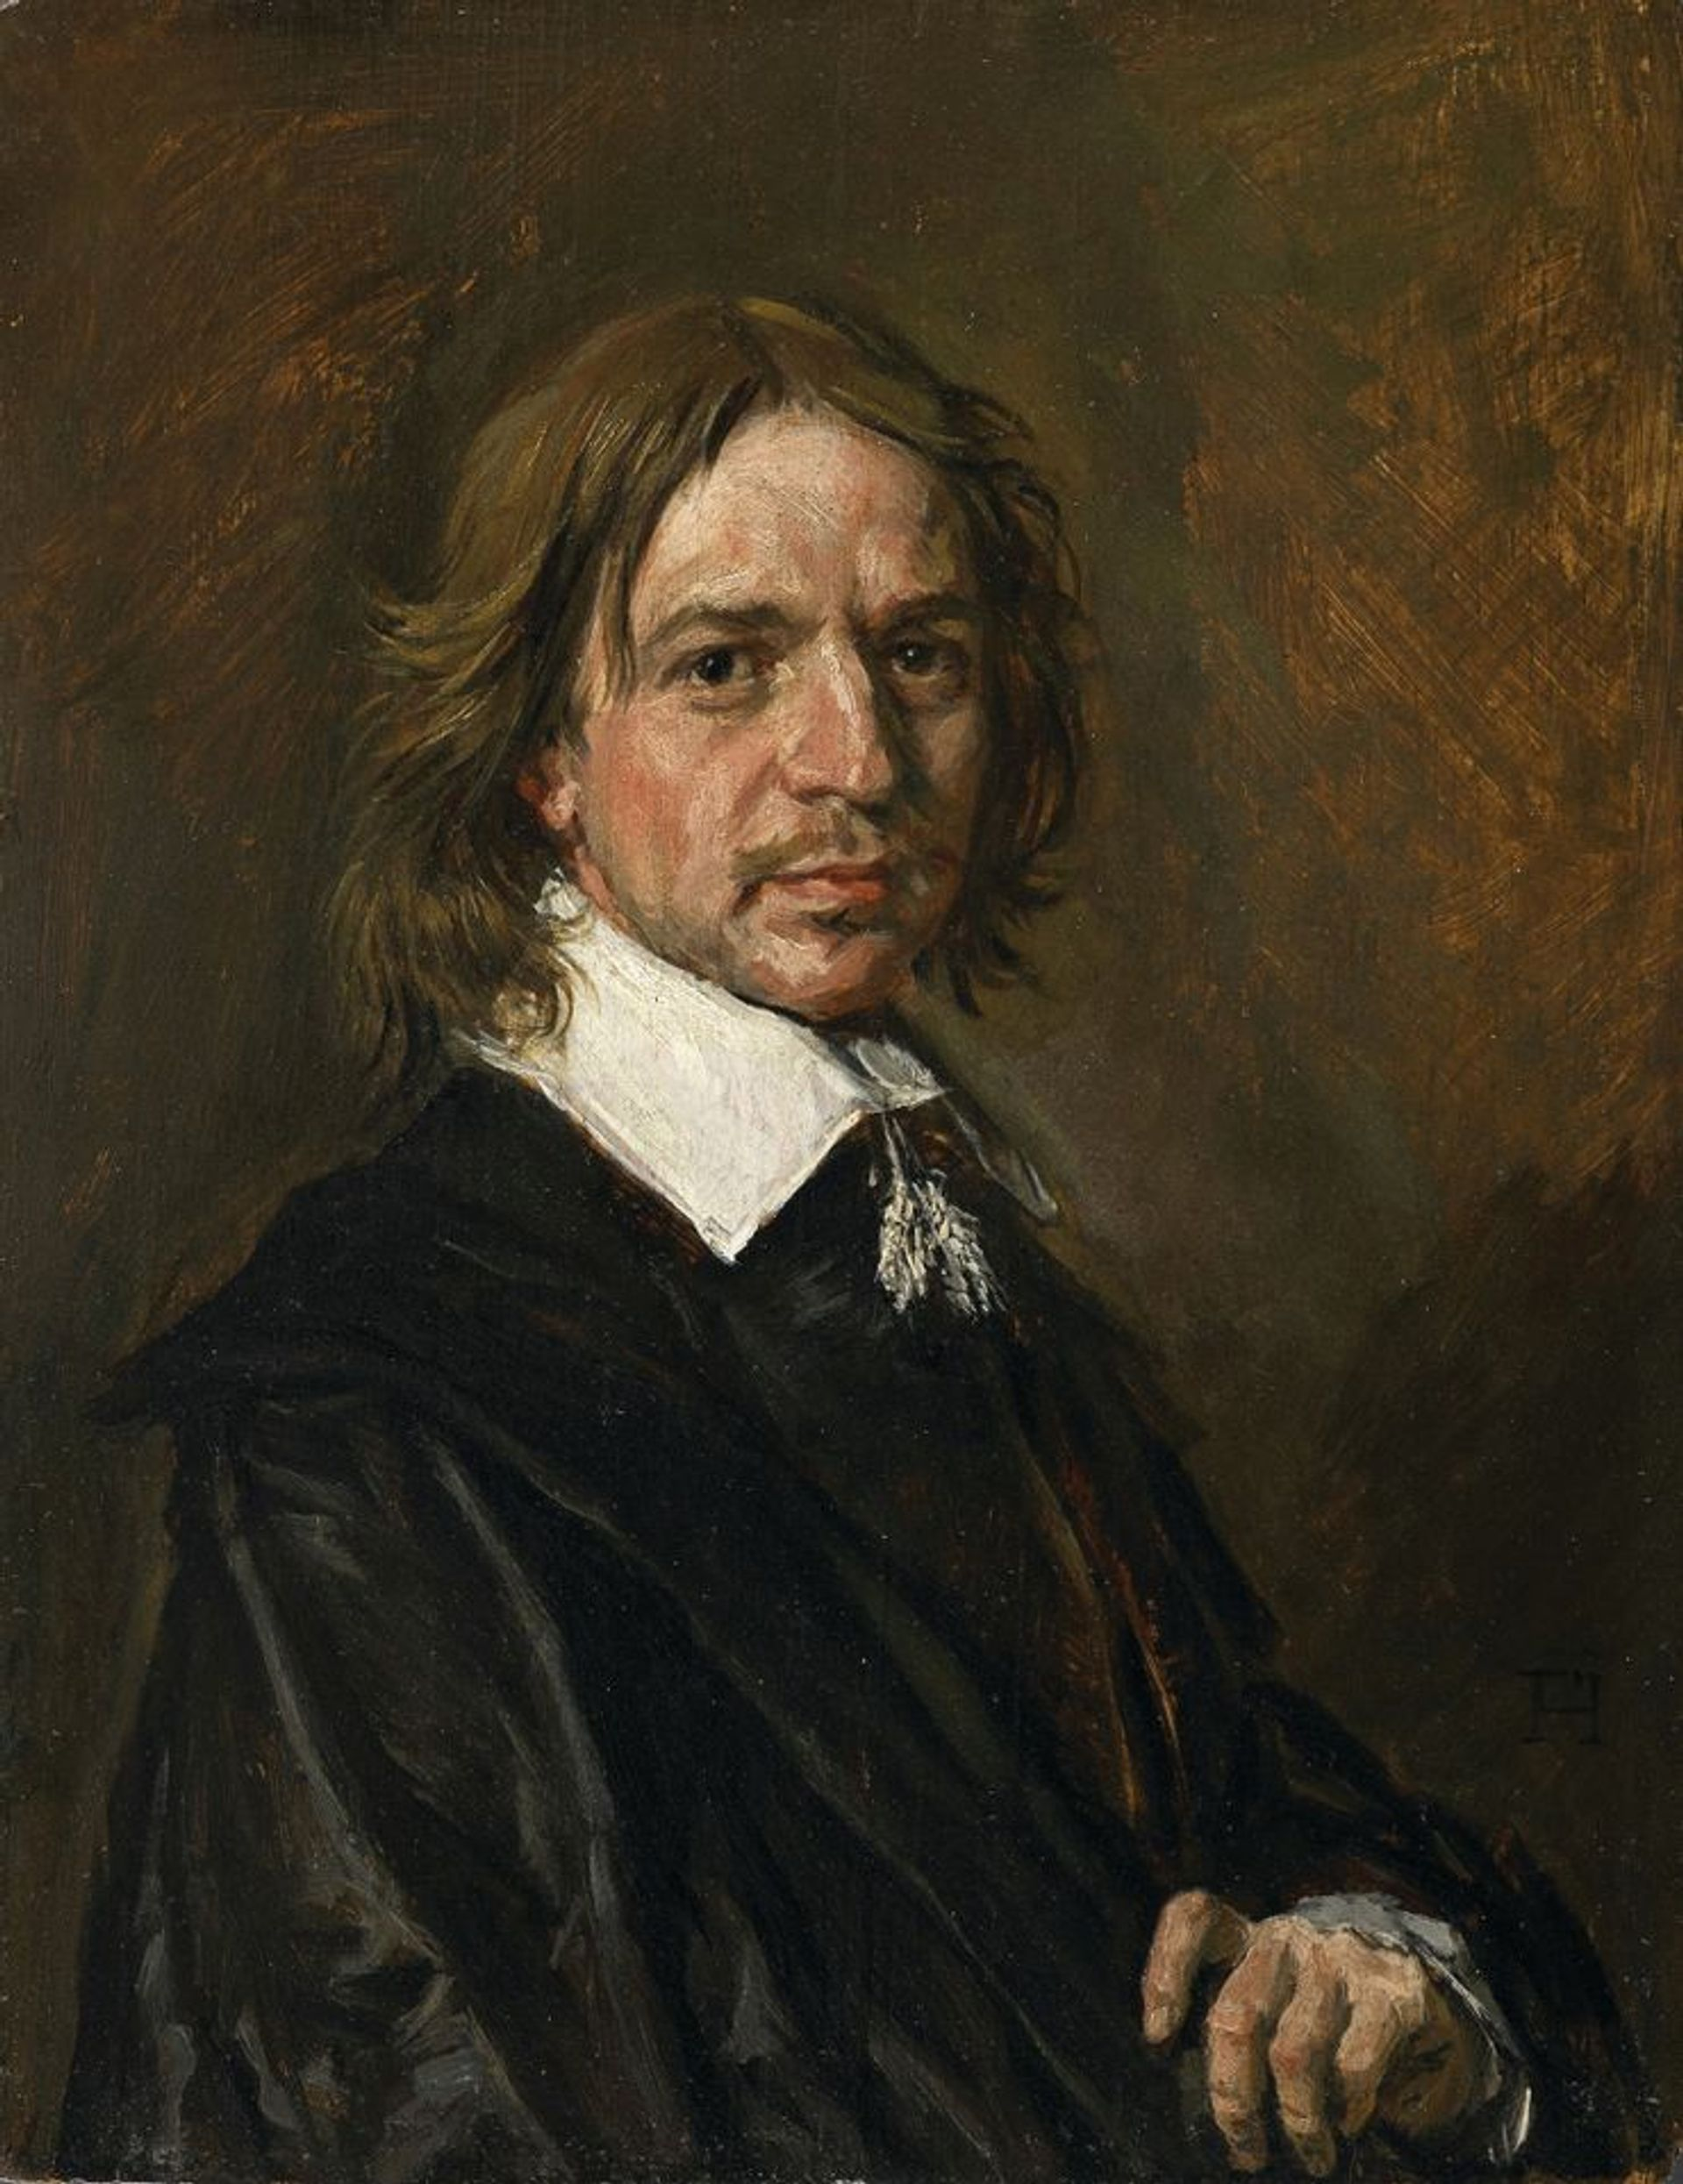 A painting purportedly by Frans Hals was sold by Sotheby's in 2011